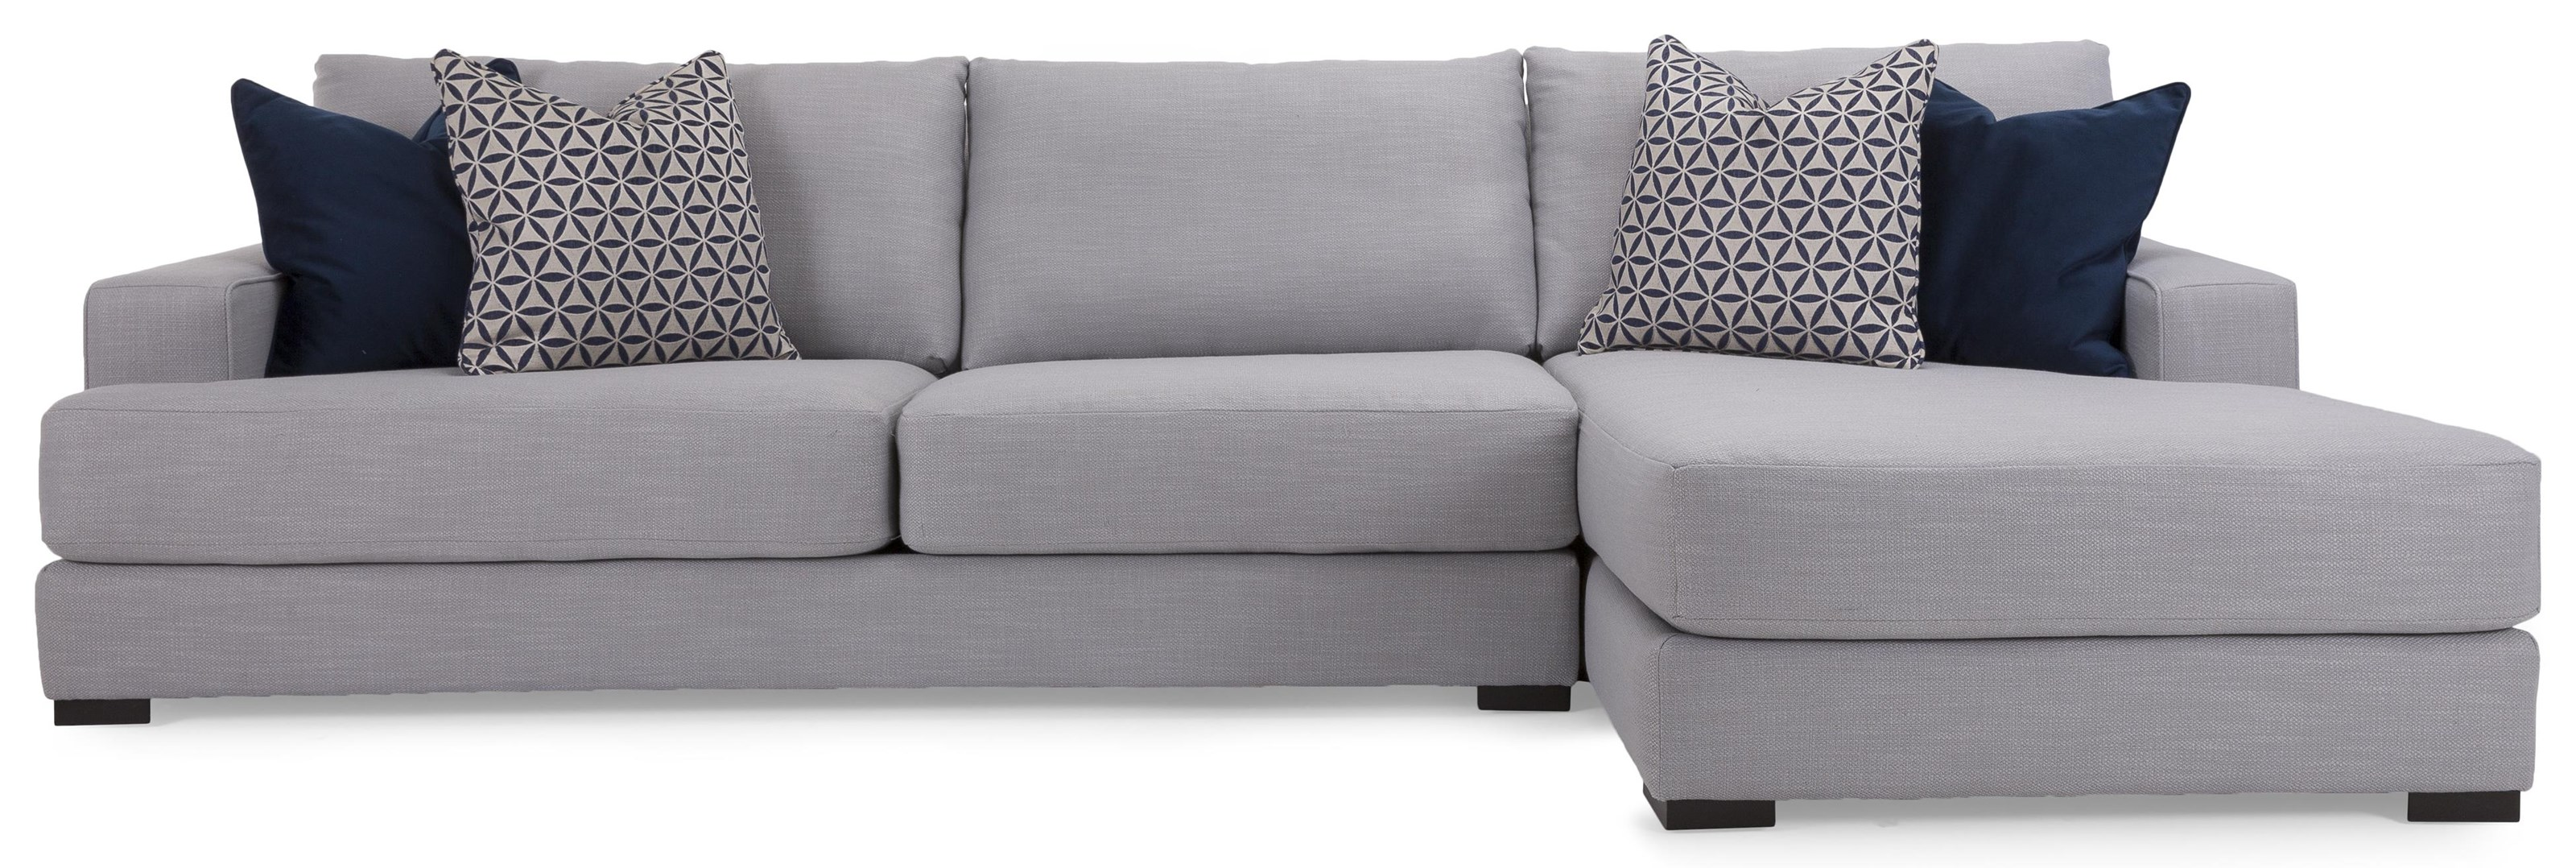 Zale Sectional by Taelor Designs at Bennett's Furniture and Mattresses